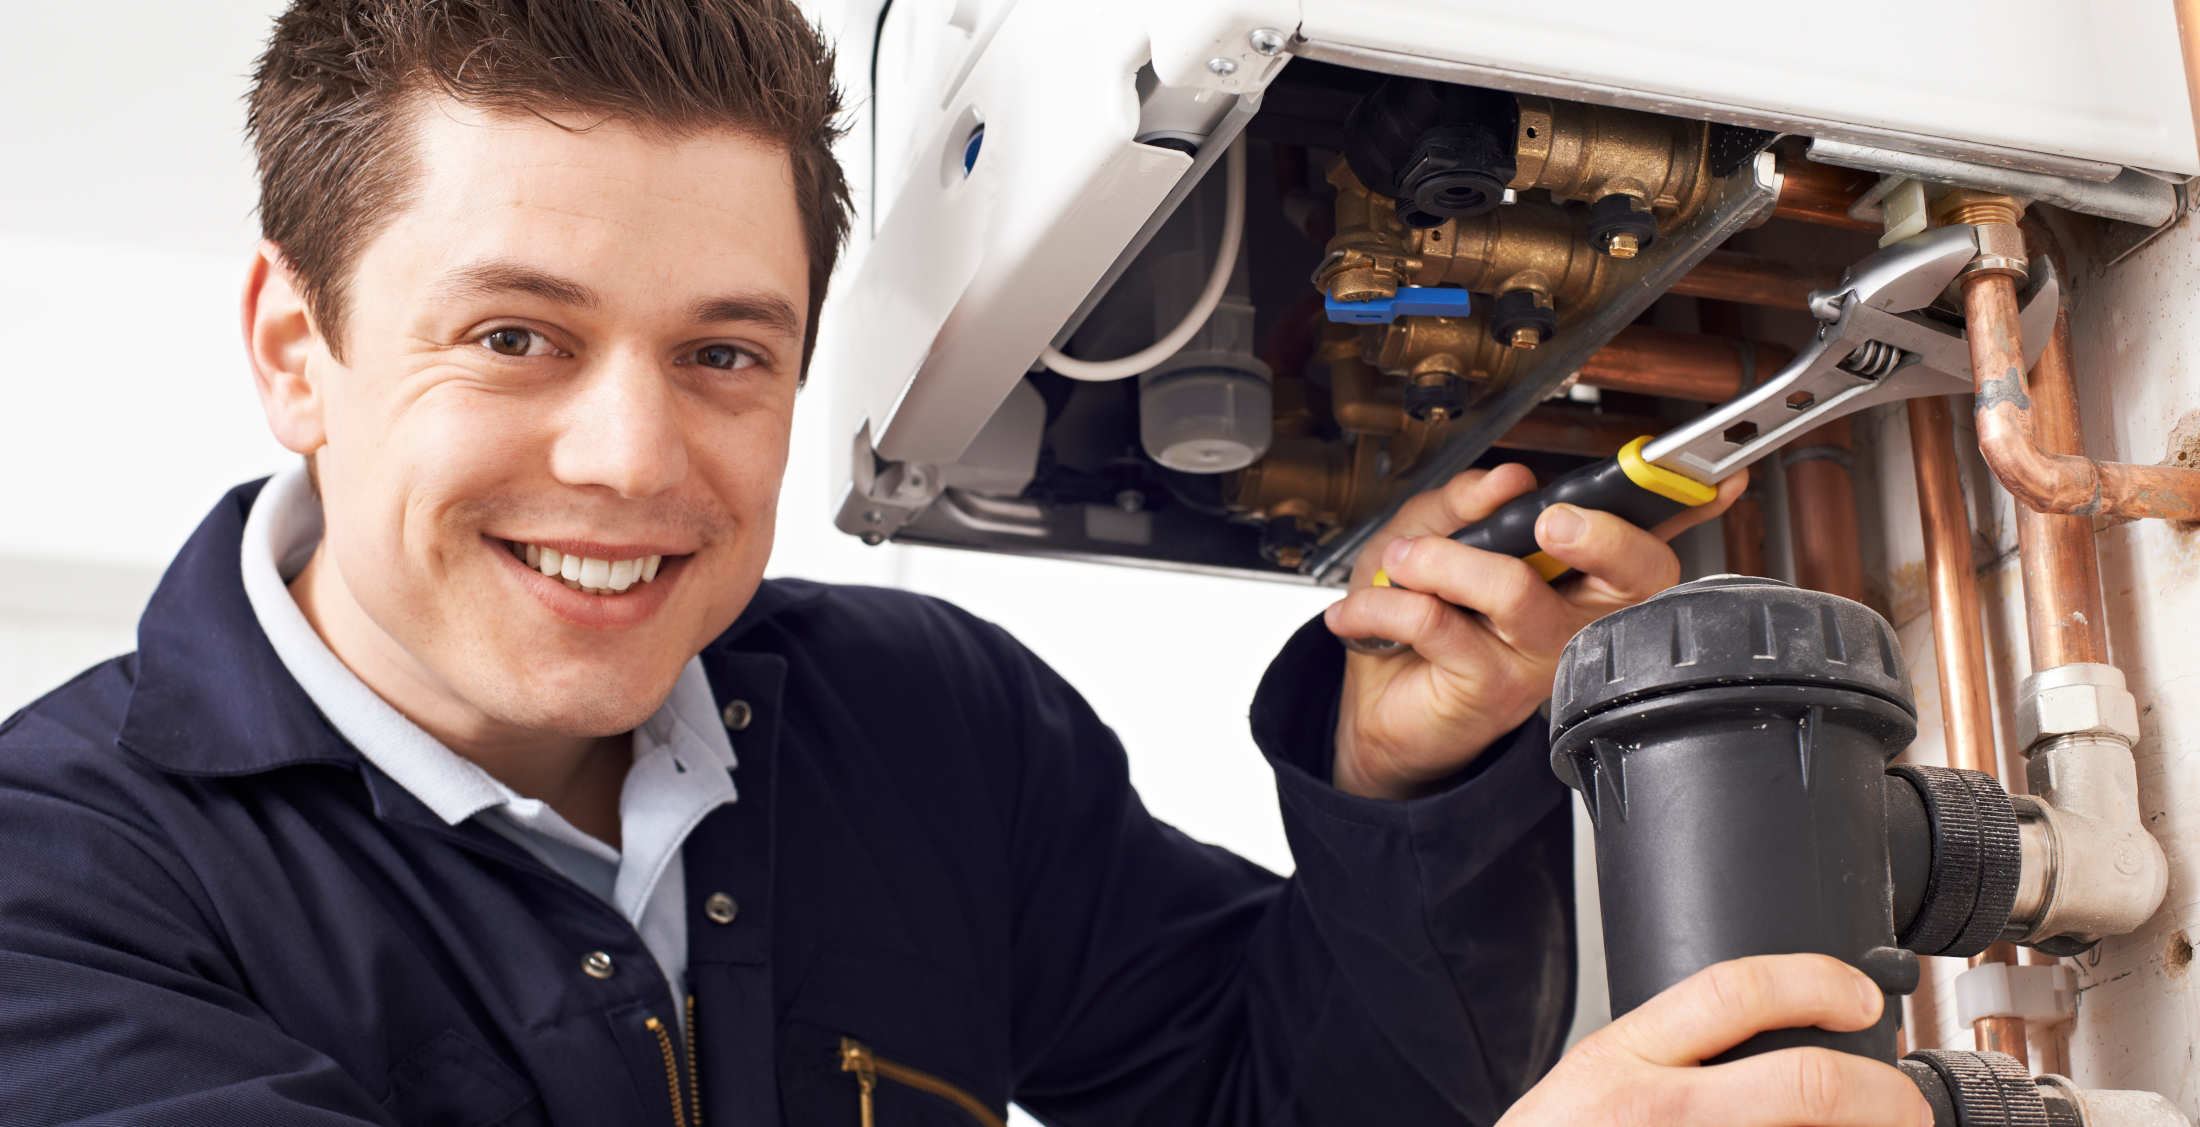 boiler service replacement repair installation london